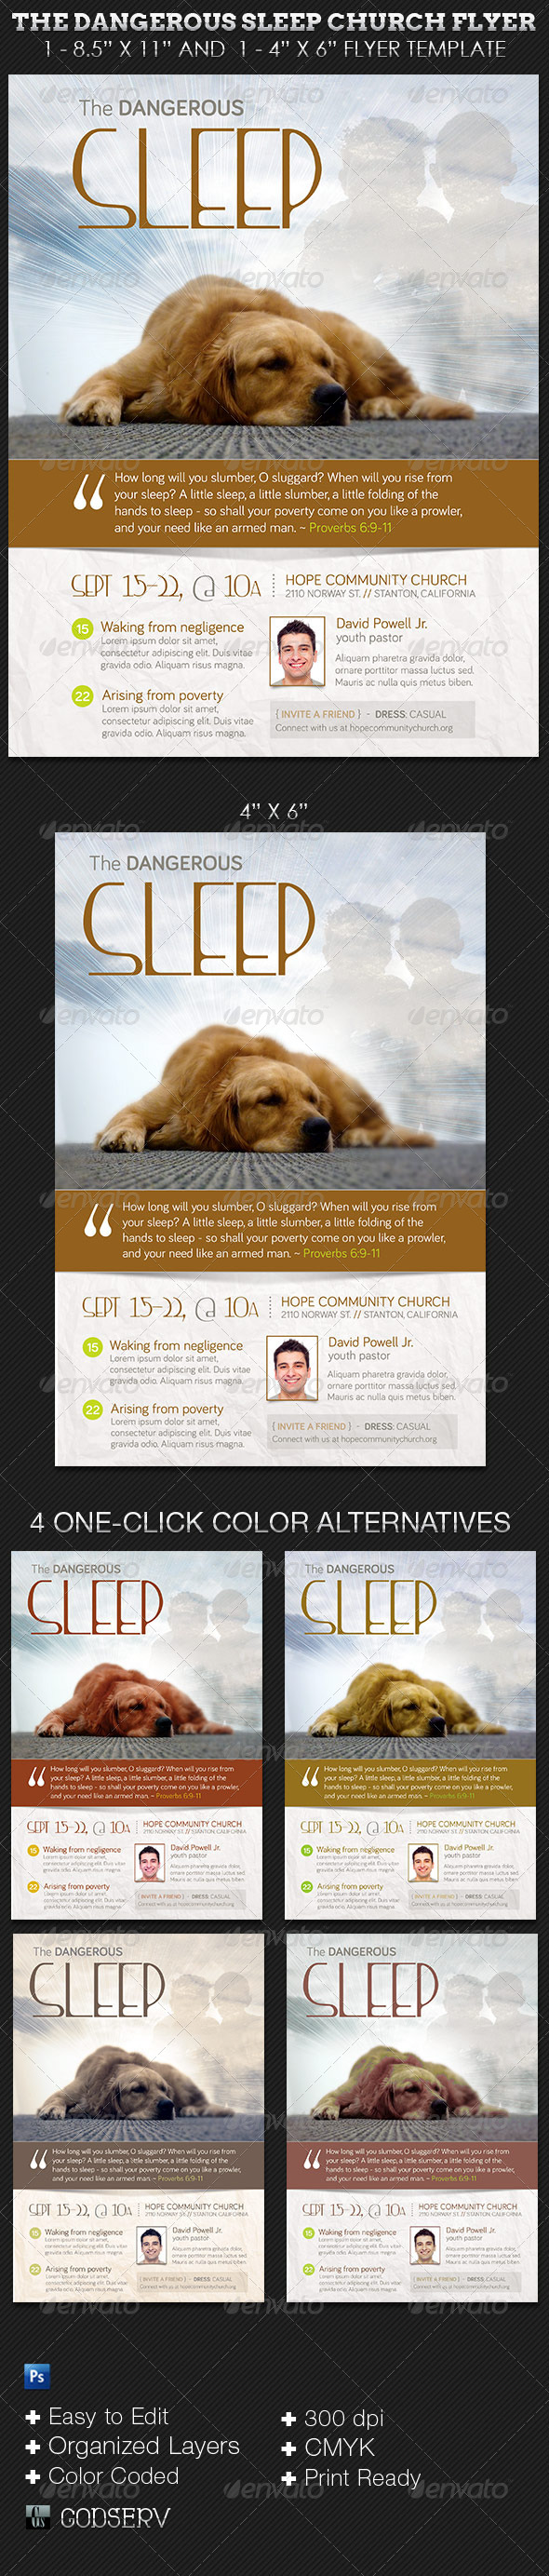 GraphicRiver The Dangerous Sleep Church Flyer Template 5683426